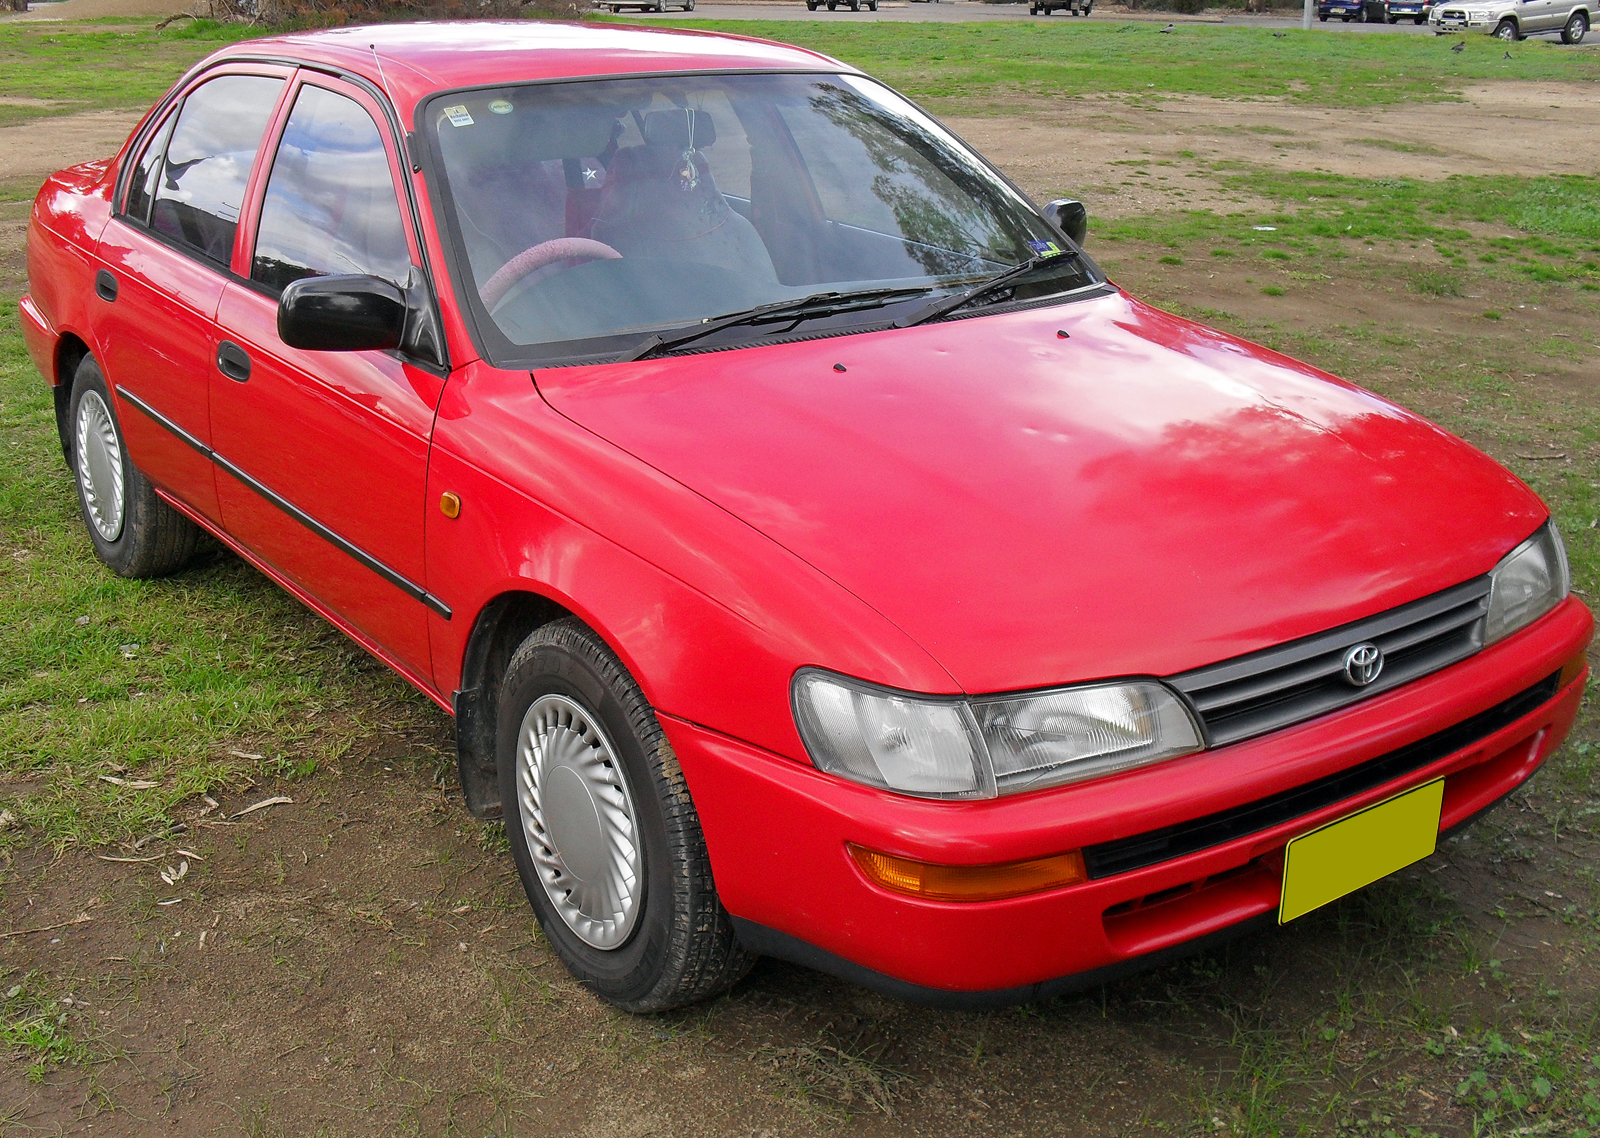 1994 toyota corolla base sedan 1 6l manual rh carspecs us manual toyota corolla 1994 español pdf manual de usuario toyota corolla 1994